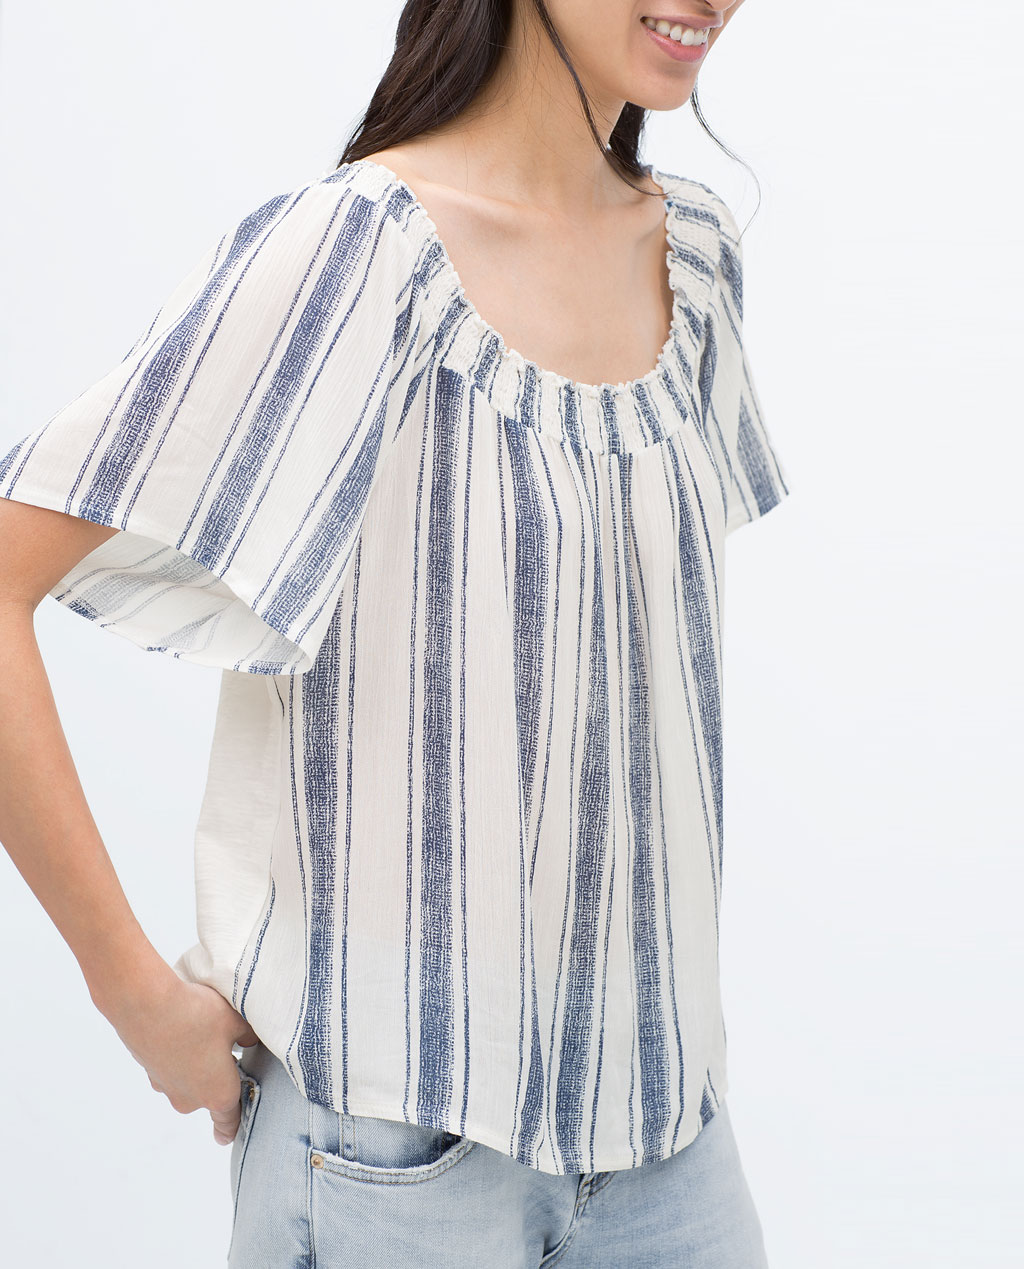 Zara Off-Shoulder T-Shirt